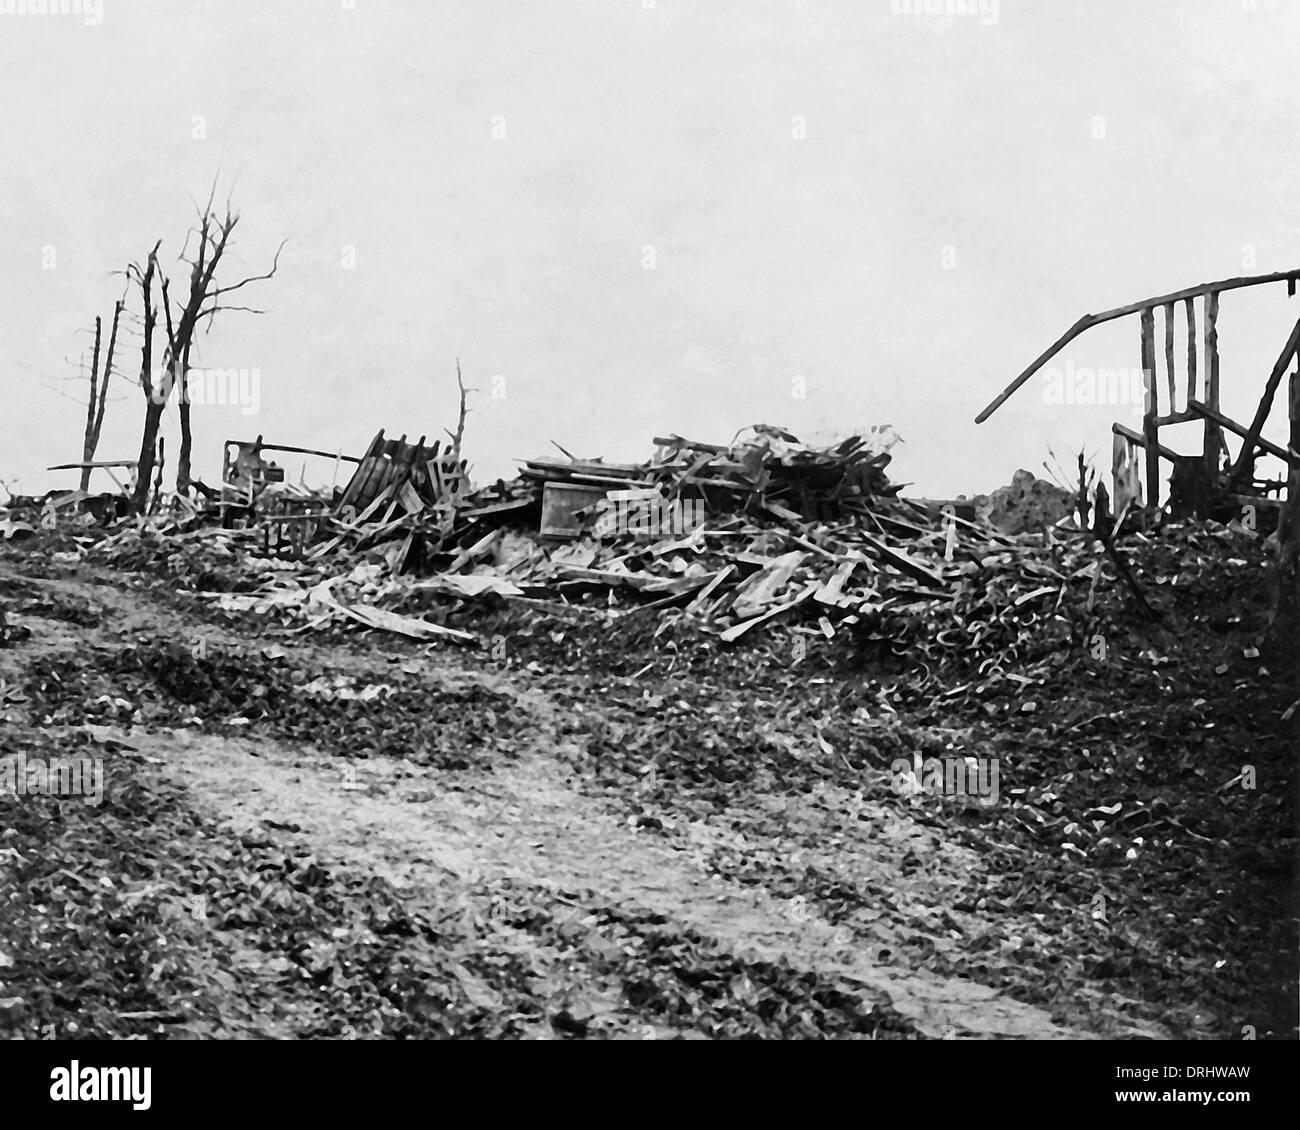 Scene of desolation on the Somme, Western Front, WW1 - Stock Image